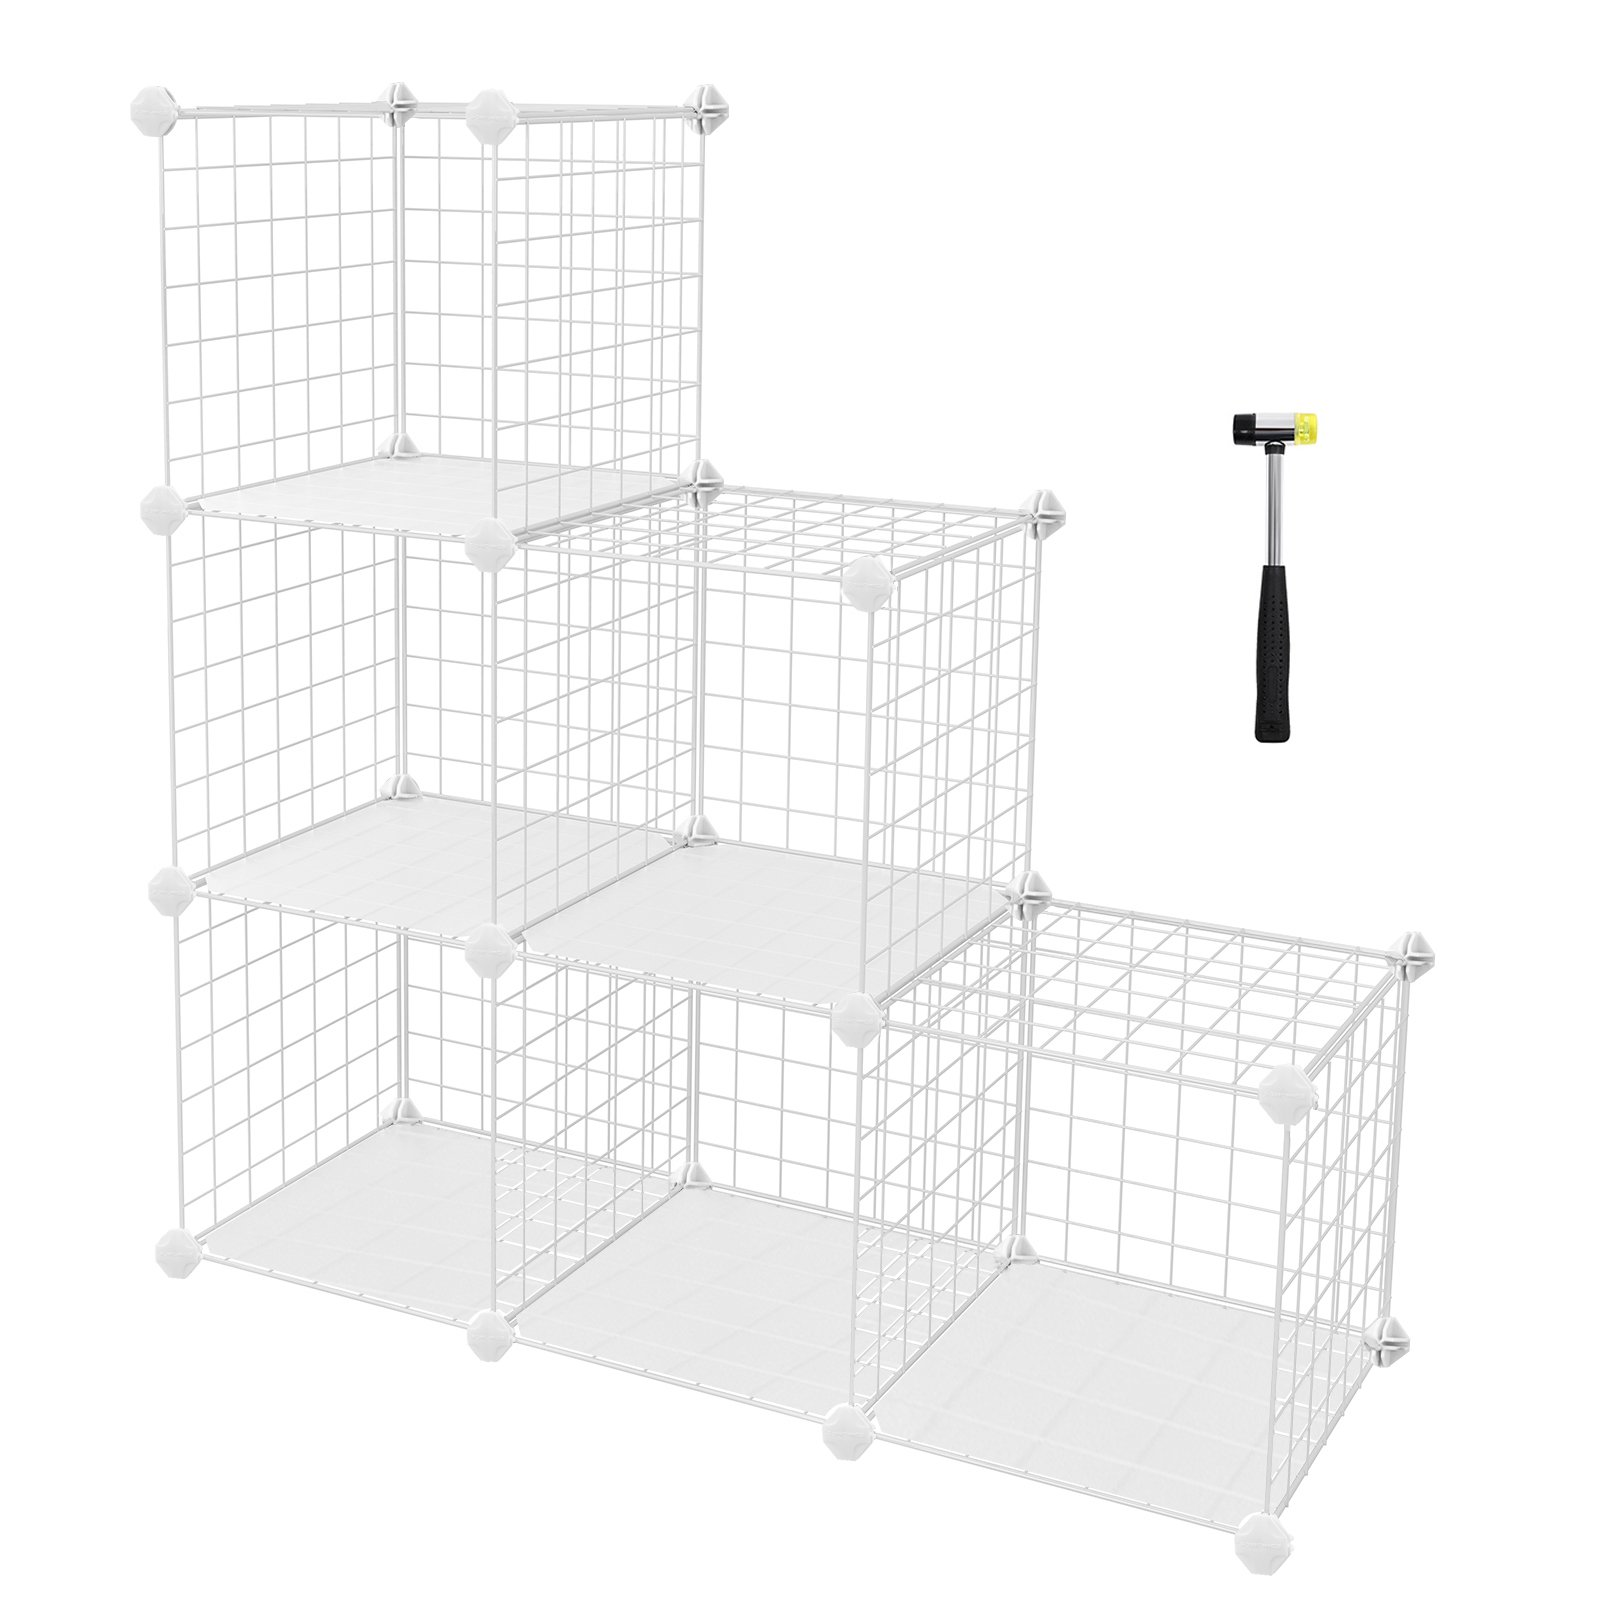 SONGMICS 6-Cube Metal Wire Storage Organizer, DIY Closet Cabinet and Modular Shelving Grids, Wire Mesh Shelves and Rack, White, ULPI111W